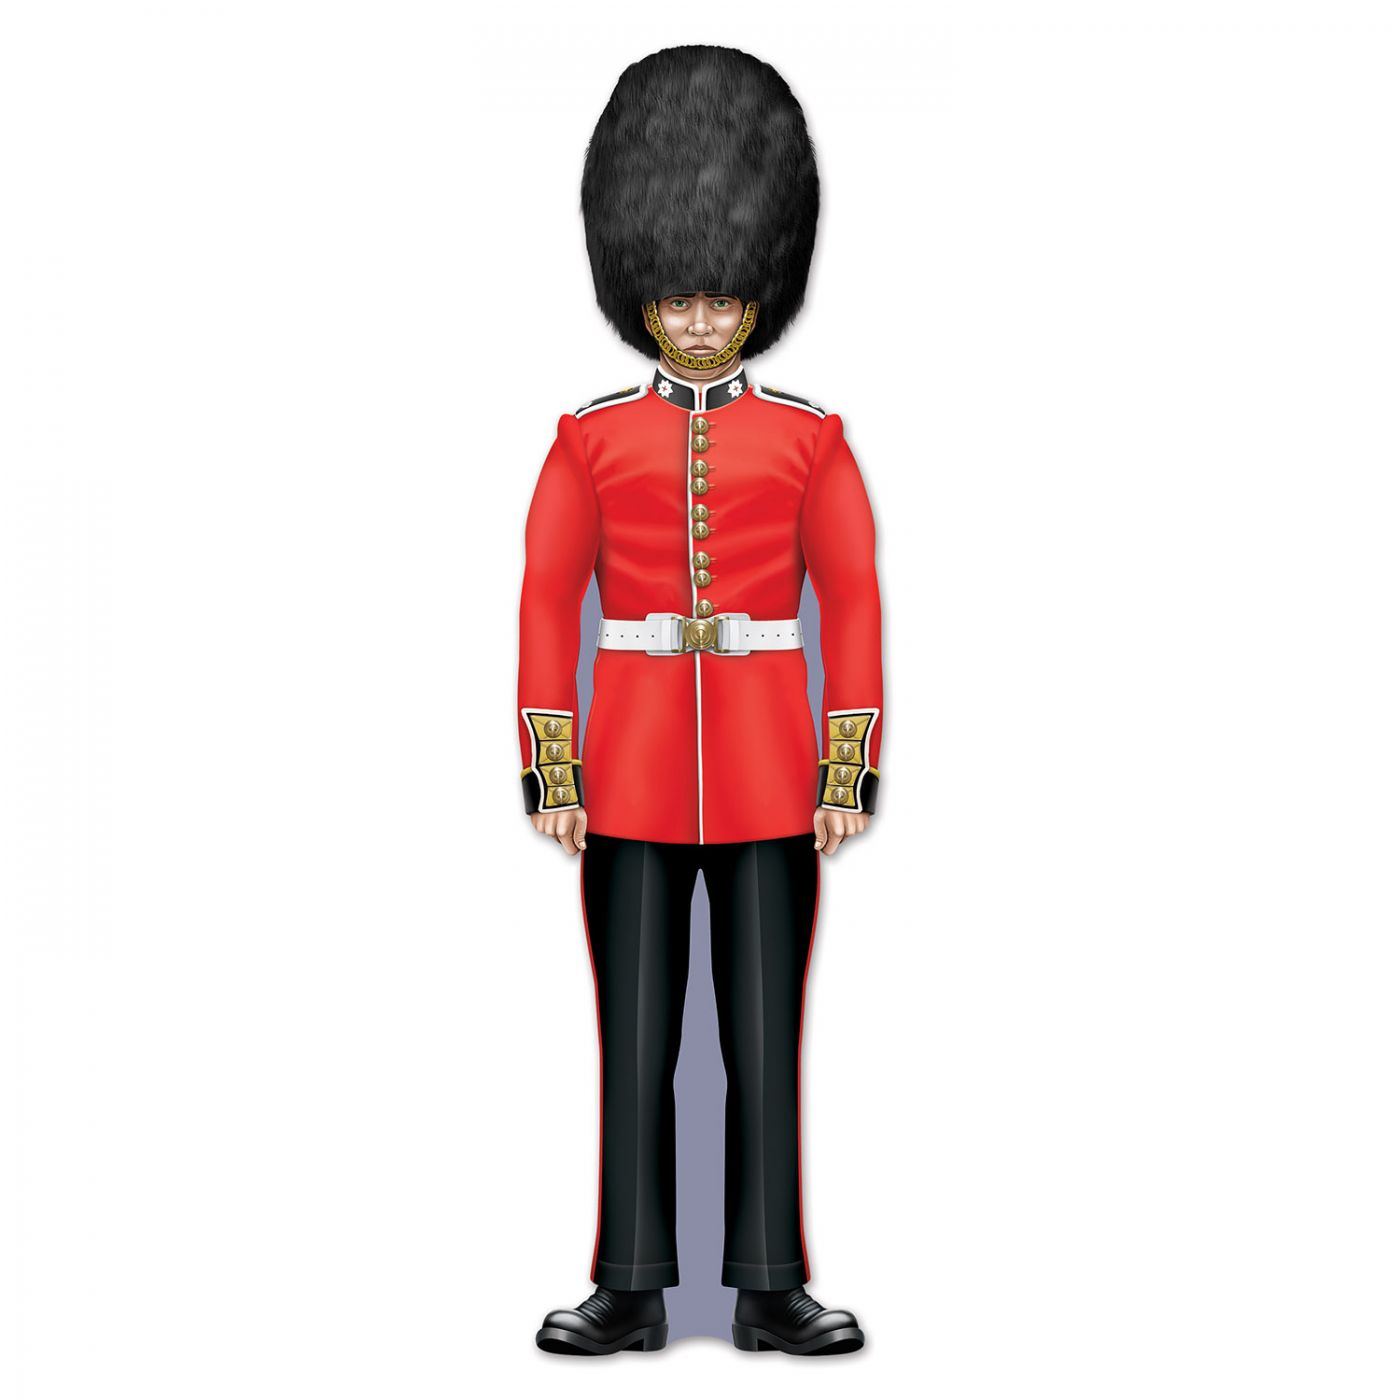 Royal Guard Cutout (24) image